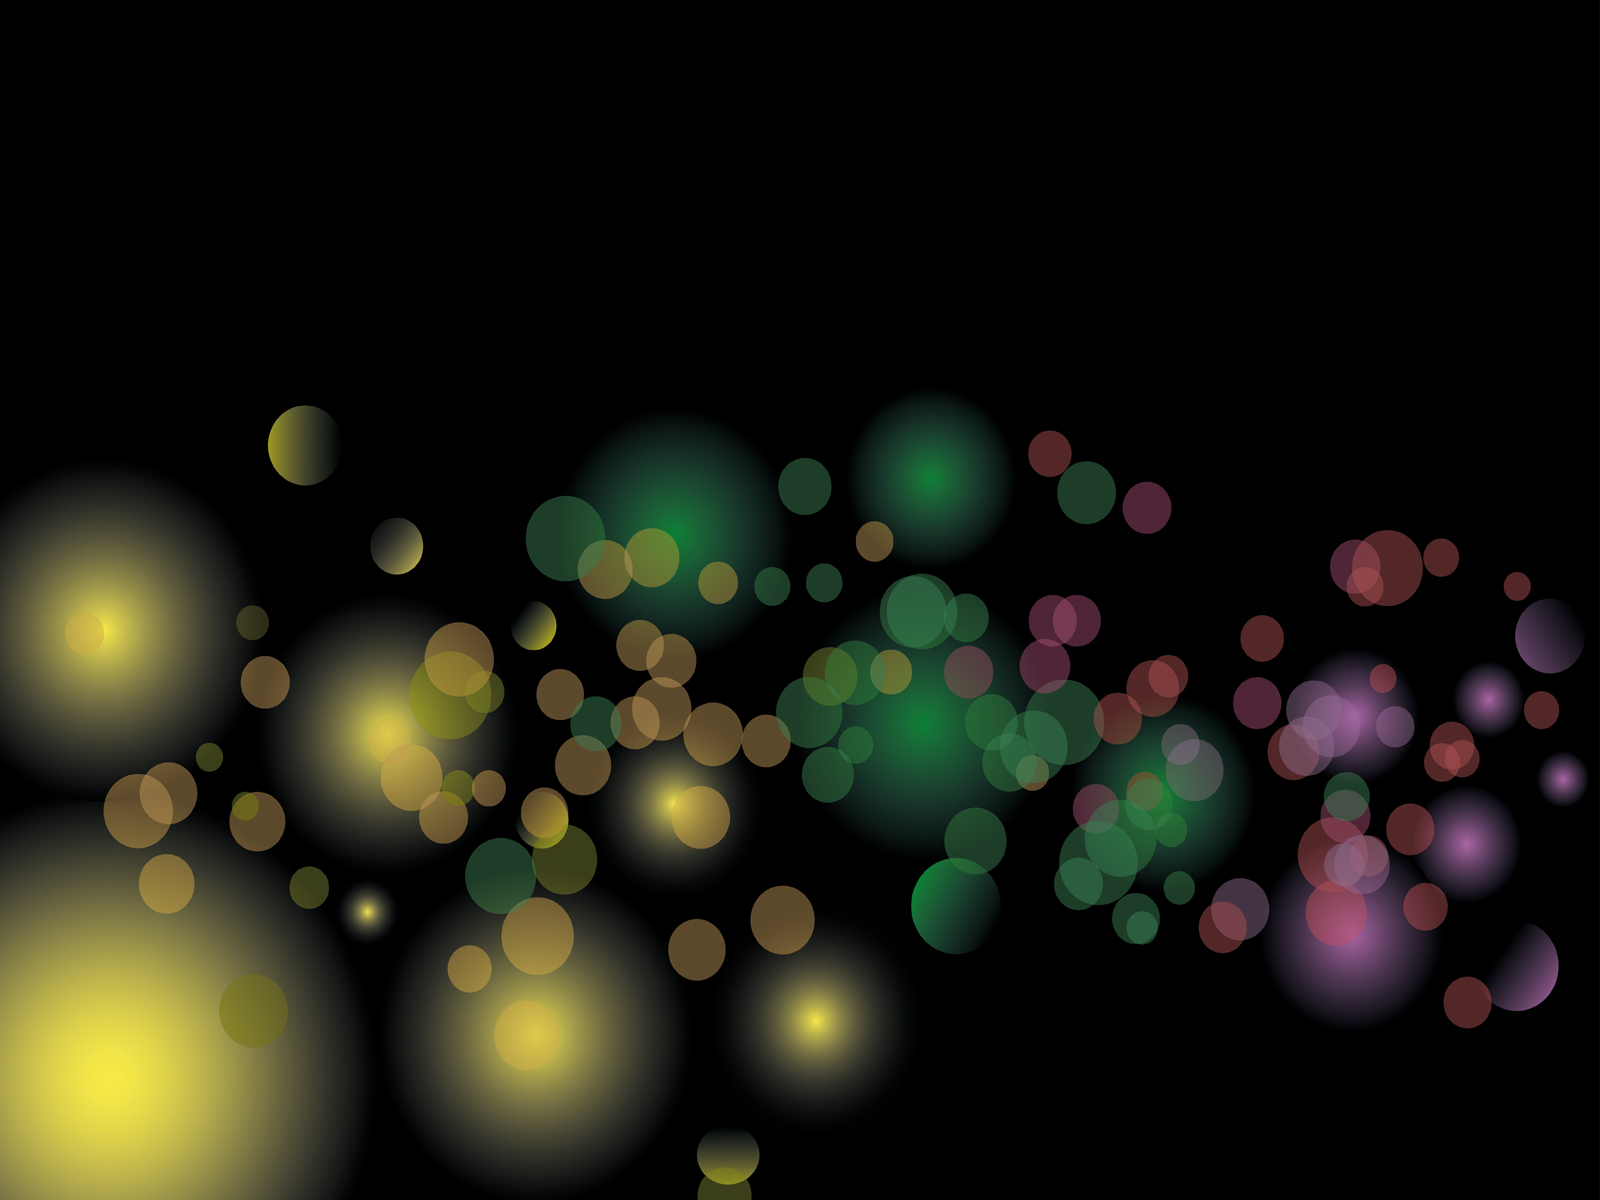 Christmas Abstract Lights Backgrounds